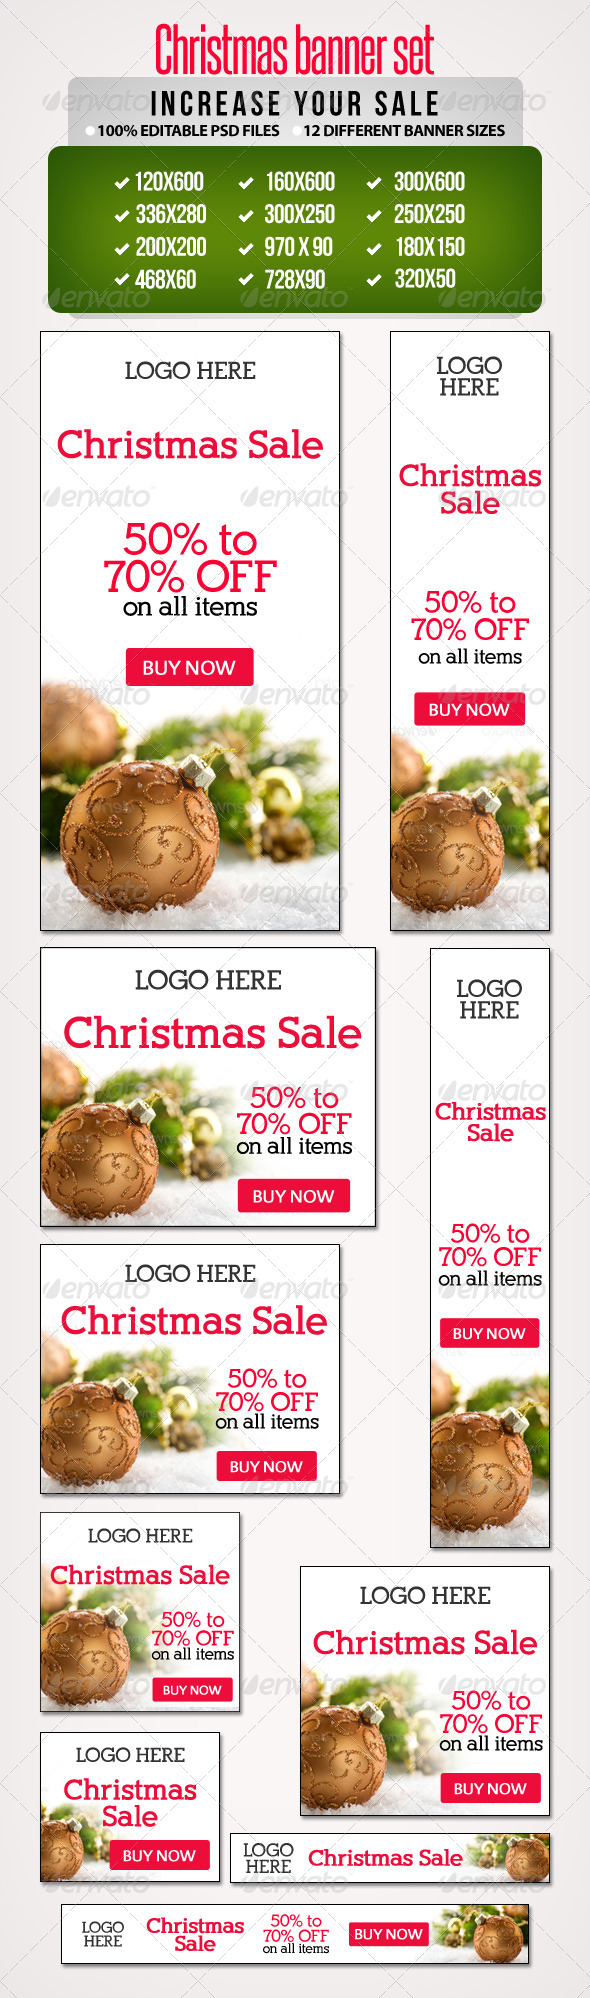 Christmas Sale Banner Set 1 - 12 Sizes - Banners & Ads Web Elements